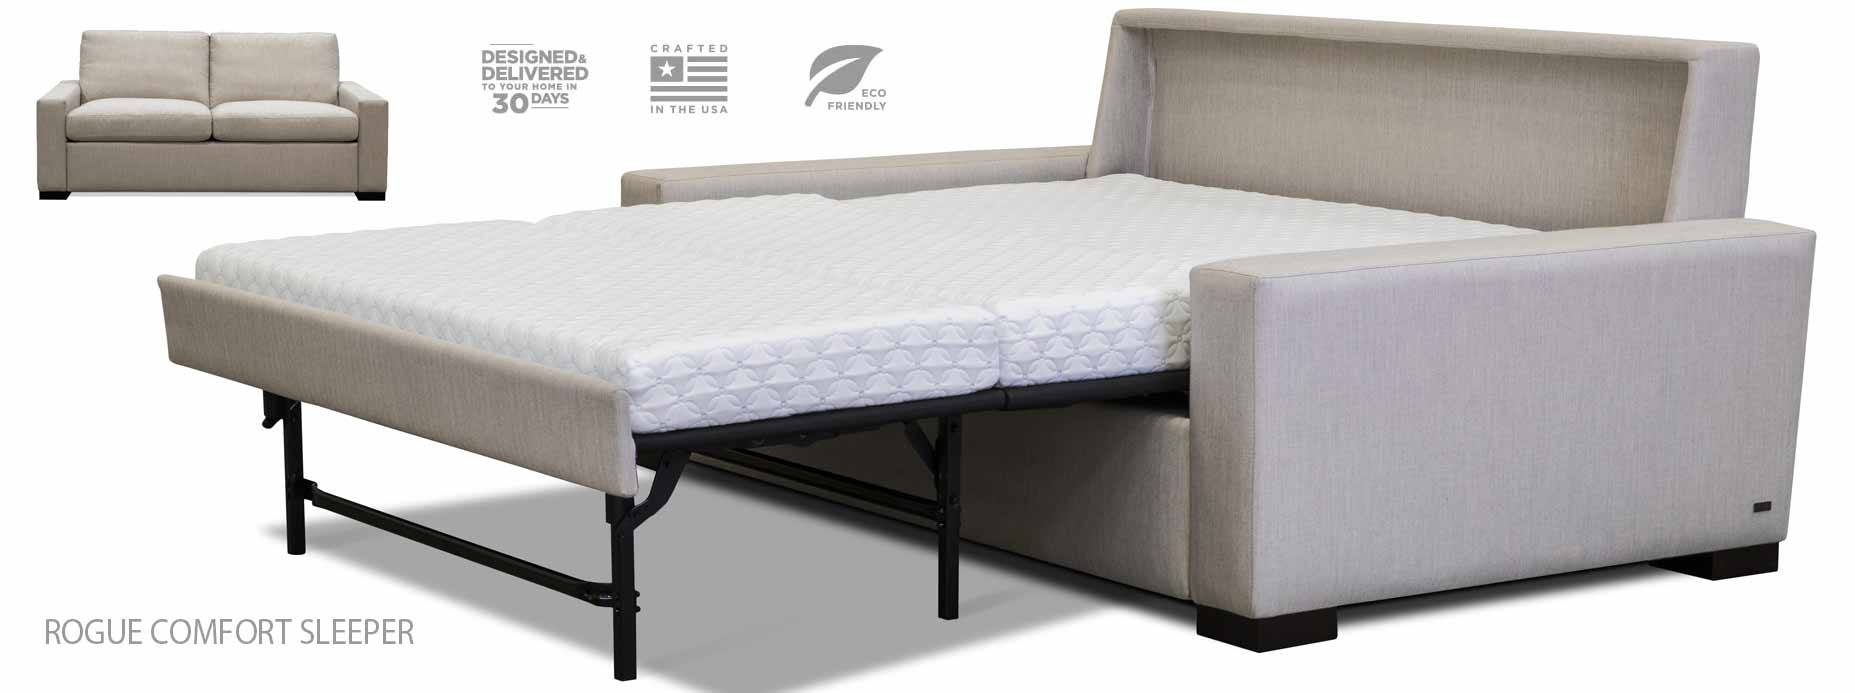 American Leather Comfort Sleeper Sale Limited Time